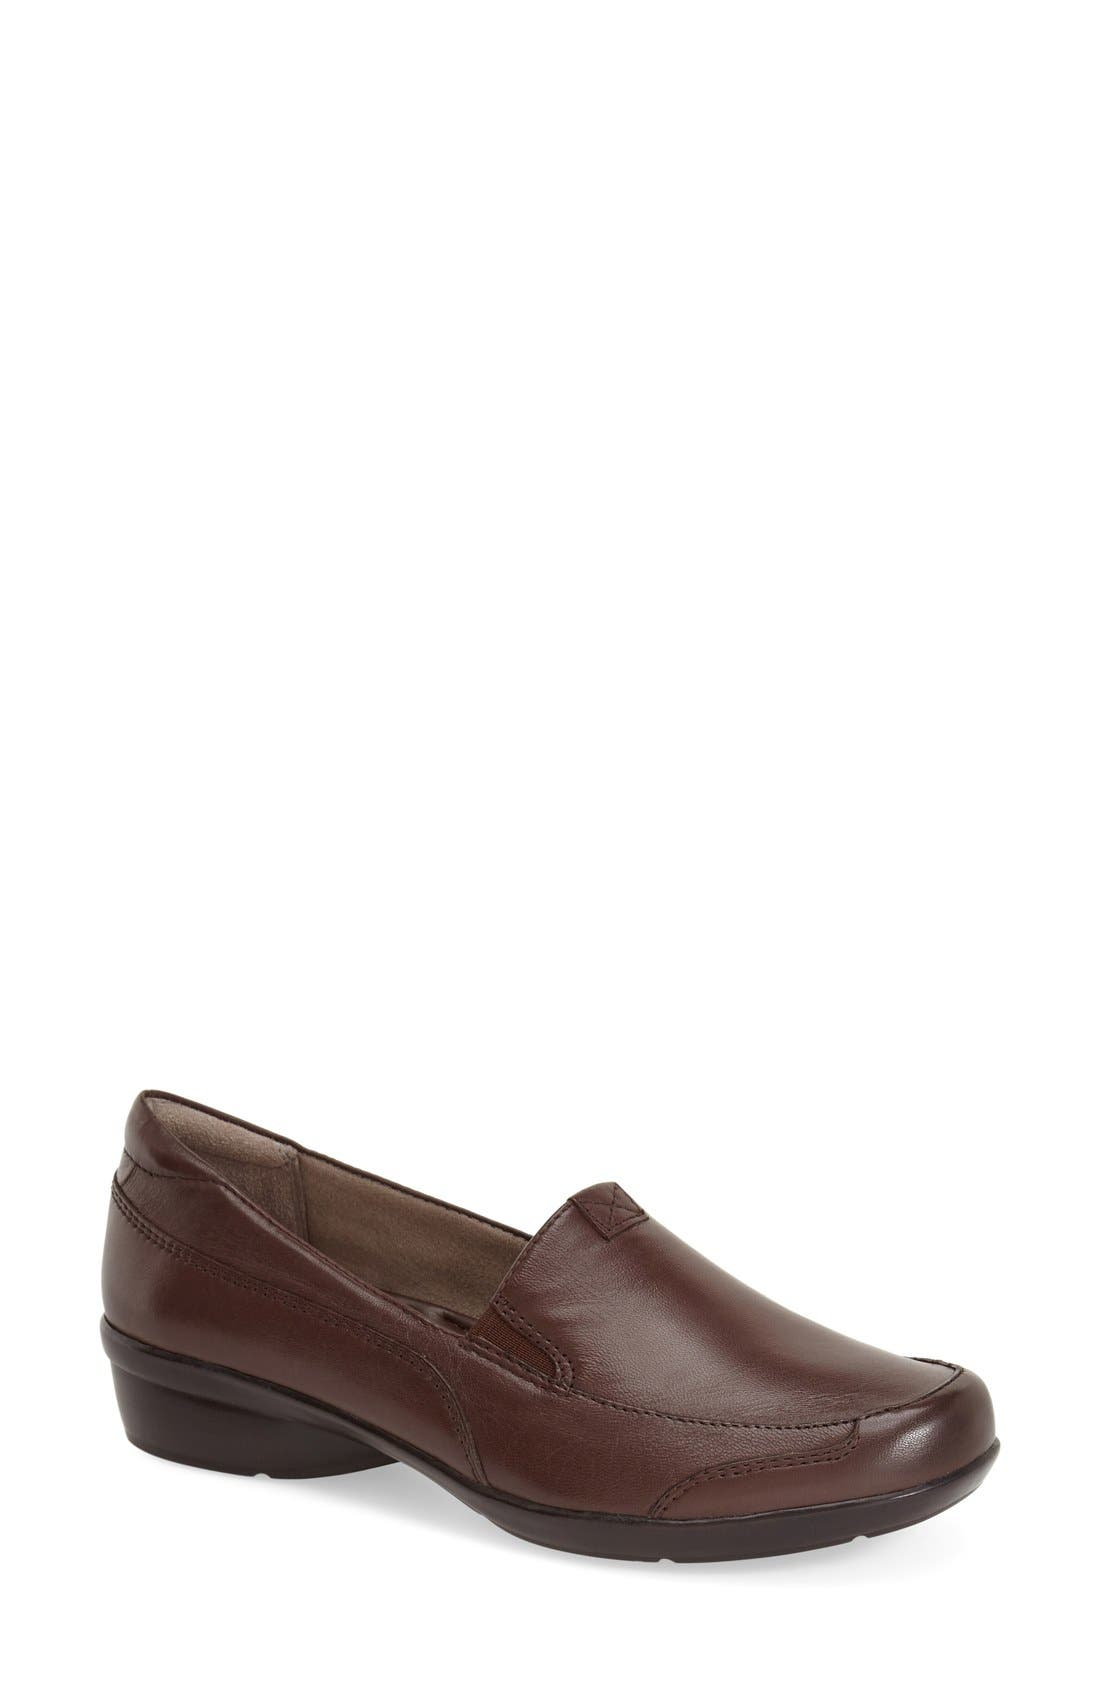 'Channing' Loafer,                             Main thumbnail 1, color,                             Bridal Brown